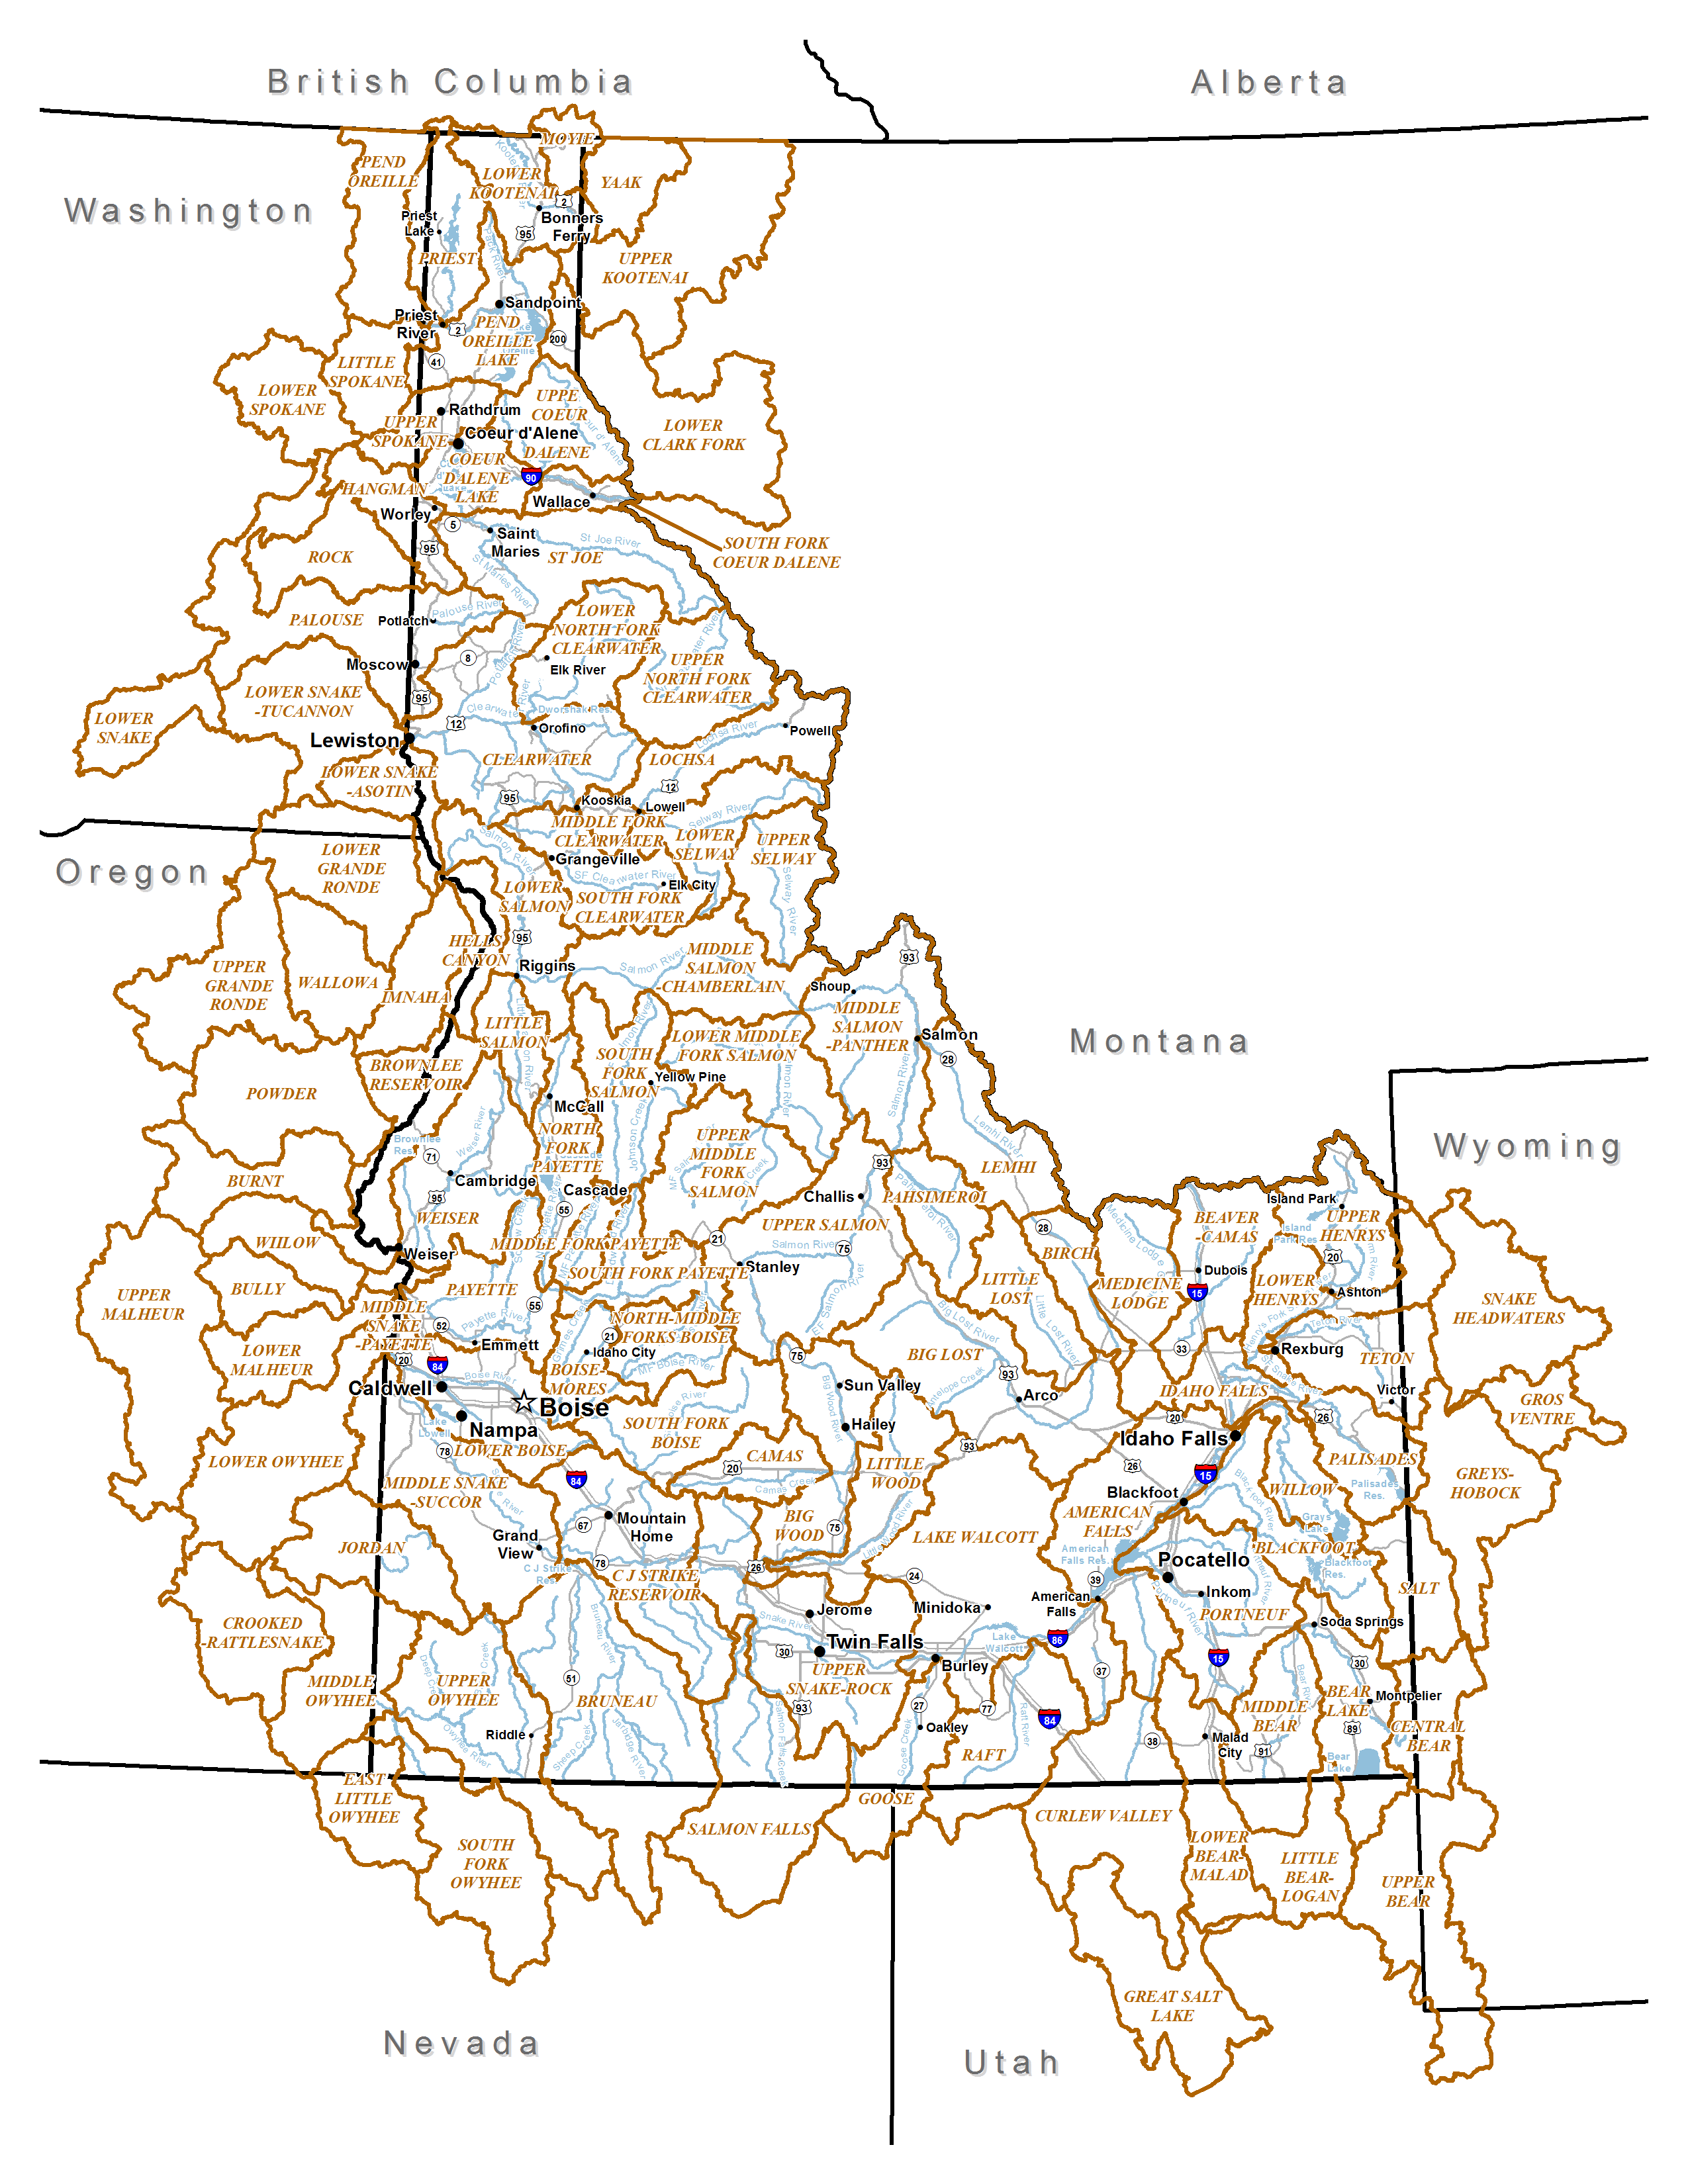 Watershed  Idaho Fish And Wildlife Information System